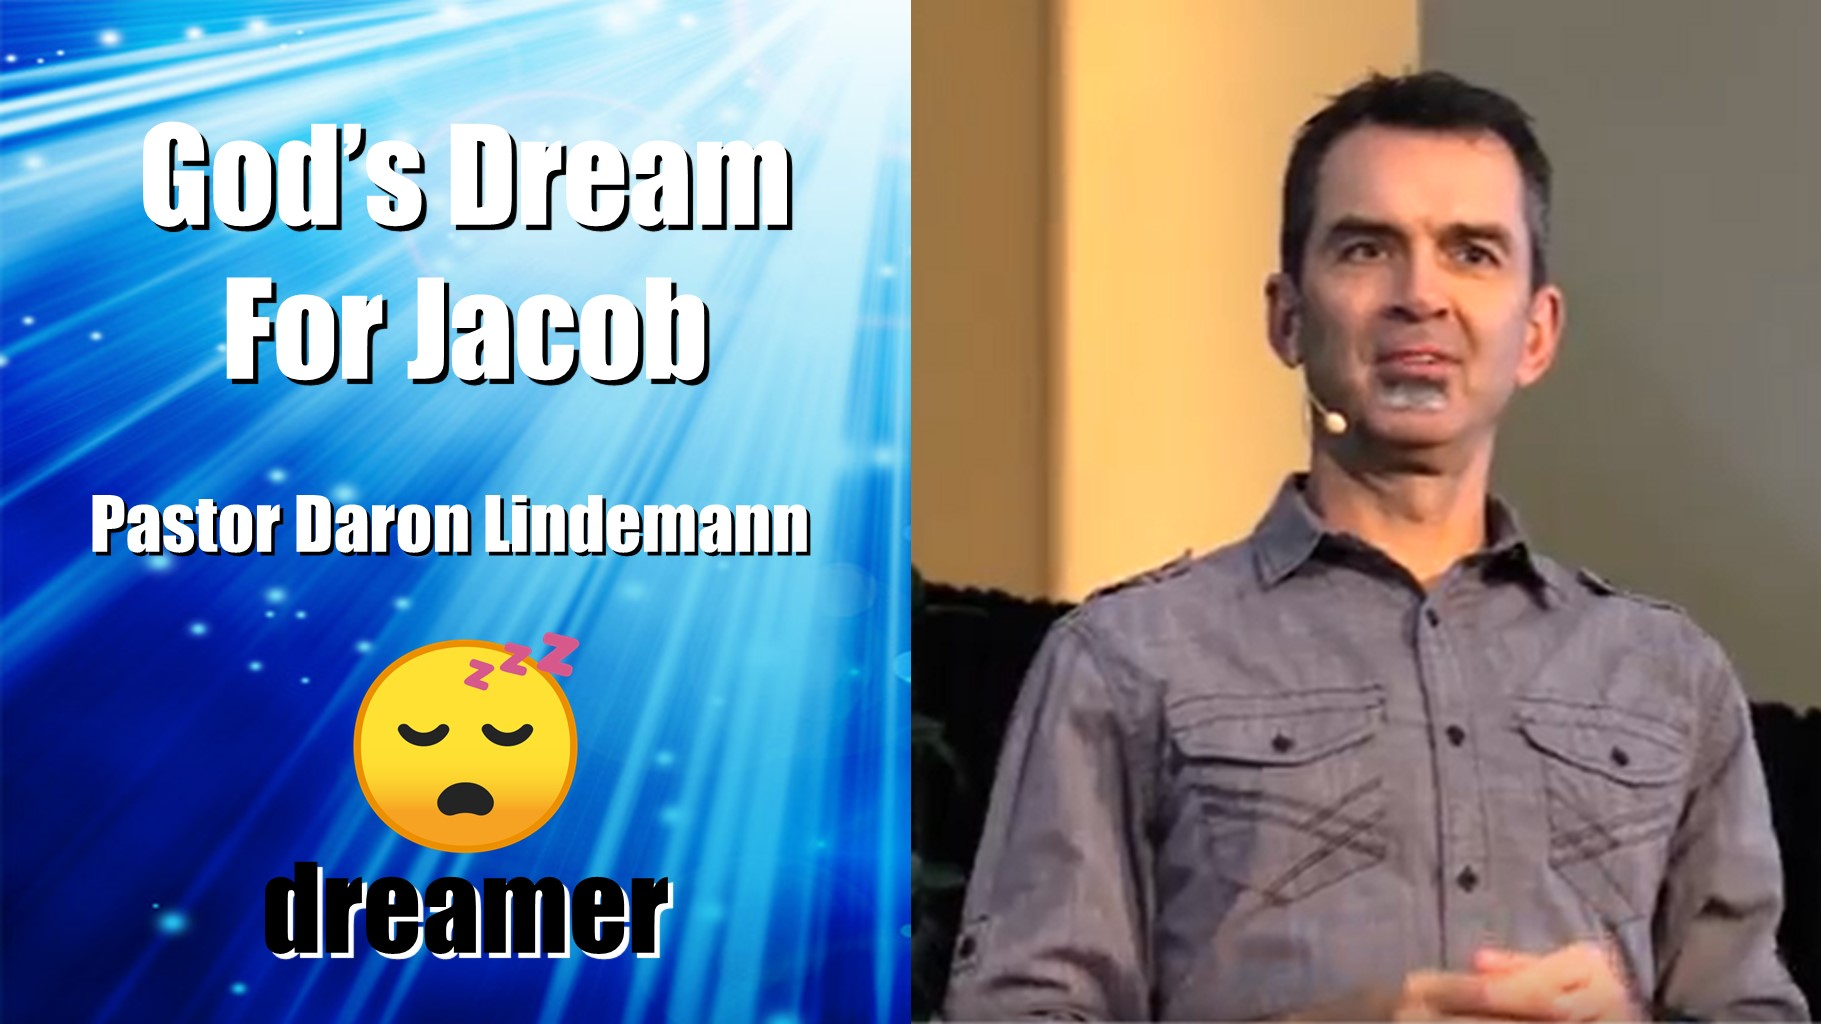 JACOB DREAMS A DIFFERENT REASSURANCE